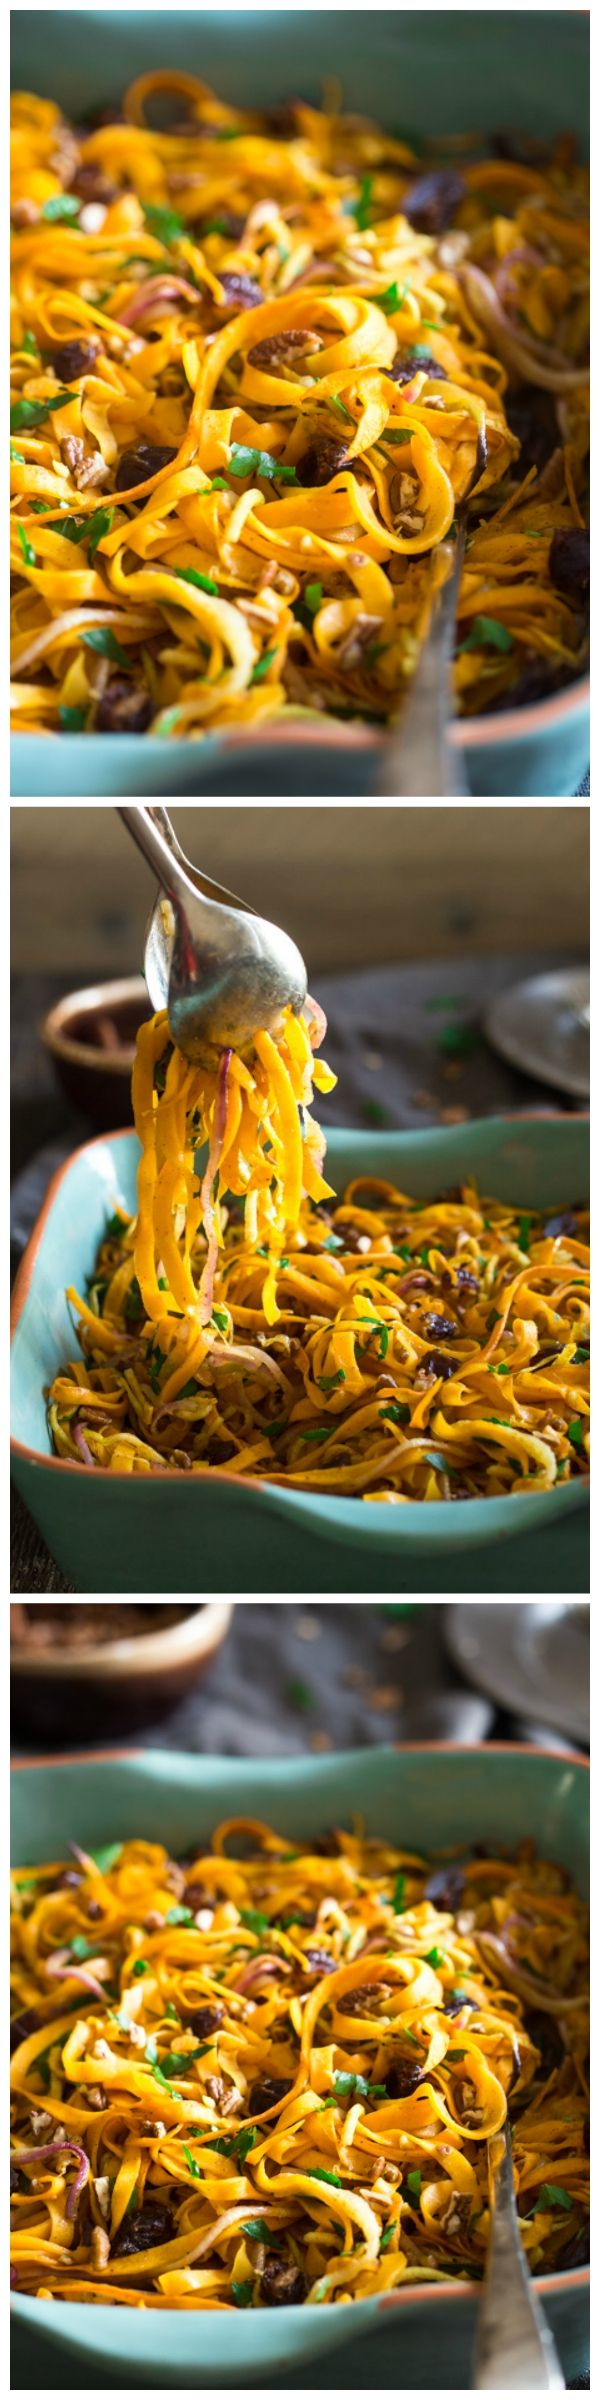 Paleo & Vegan Curried Maple Spiralized Apple and Butternut Squash Salad - This salad is full of apples, dates and pecans. It has a spicy-sweet flavor and is a healthy, paleo and vegan friendly side dish! Perfect for Thanksgiving! Repin & like. Listen to #NoelitoFlow #Noel http://www.twitter.com/noelitoflow http://www.instagram.com/rockstarking http://www.facebook.com/thisisflow